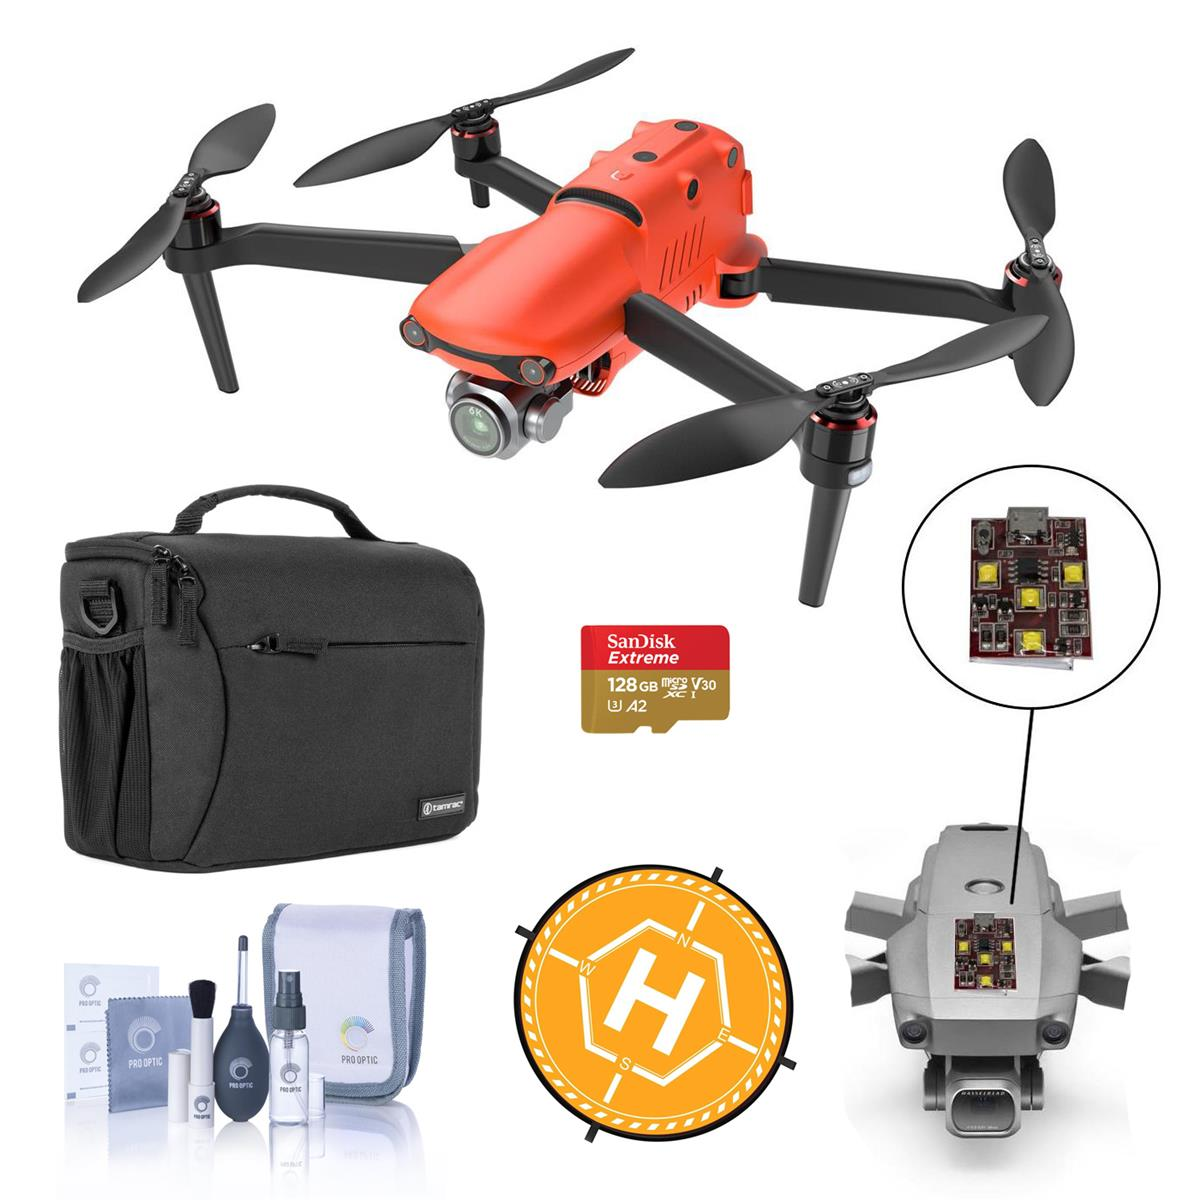 """Autel Robotics EVO II PRO Drone - Bundle With 128GB MicroSDXC Card, Firehouse Technology ARC White, Strobe FS Labs 36"""" Collapsible Foldable Landing Pad, Shoulder Bag, Cleaning Kit"""